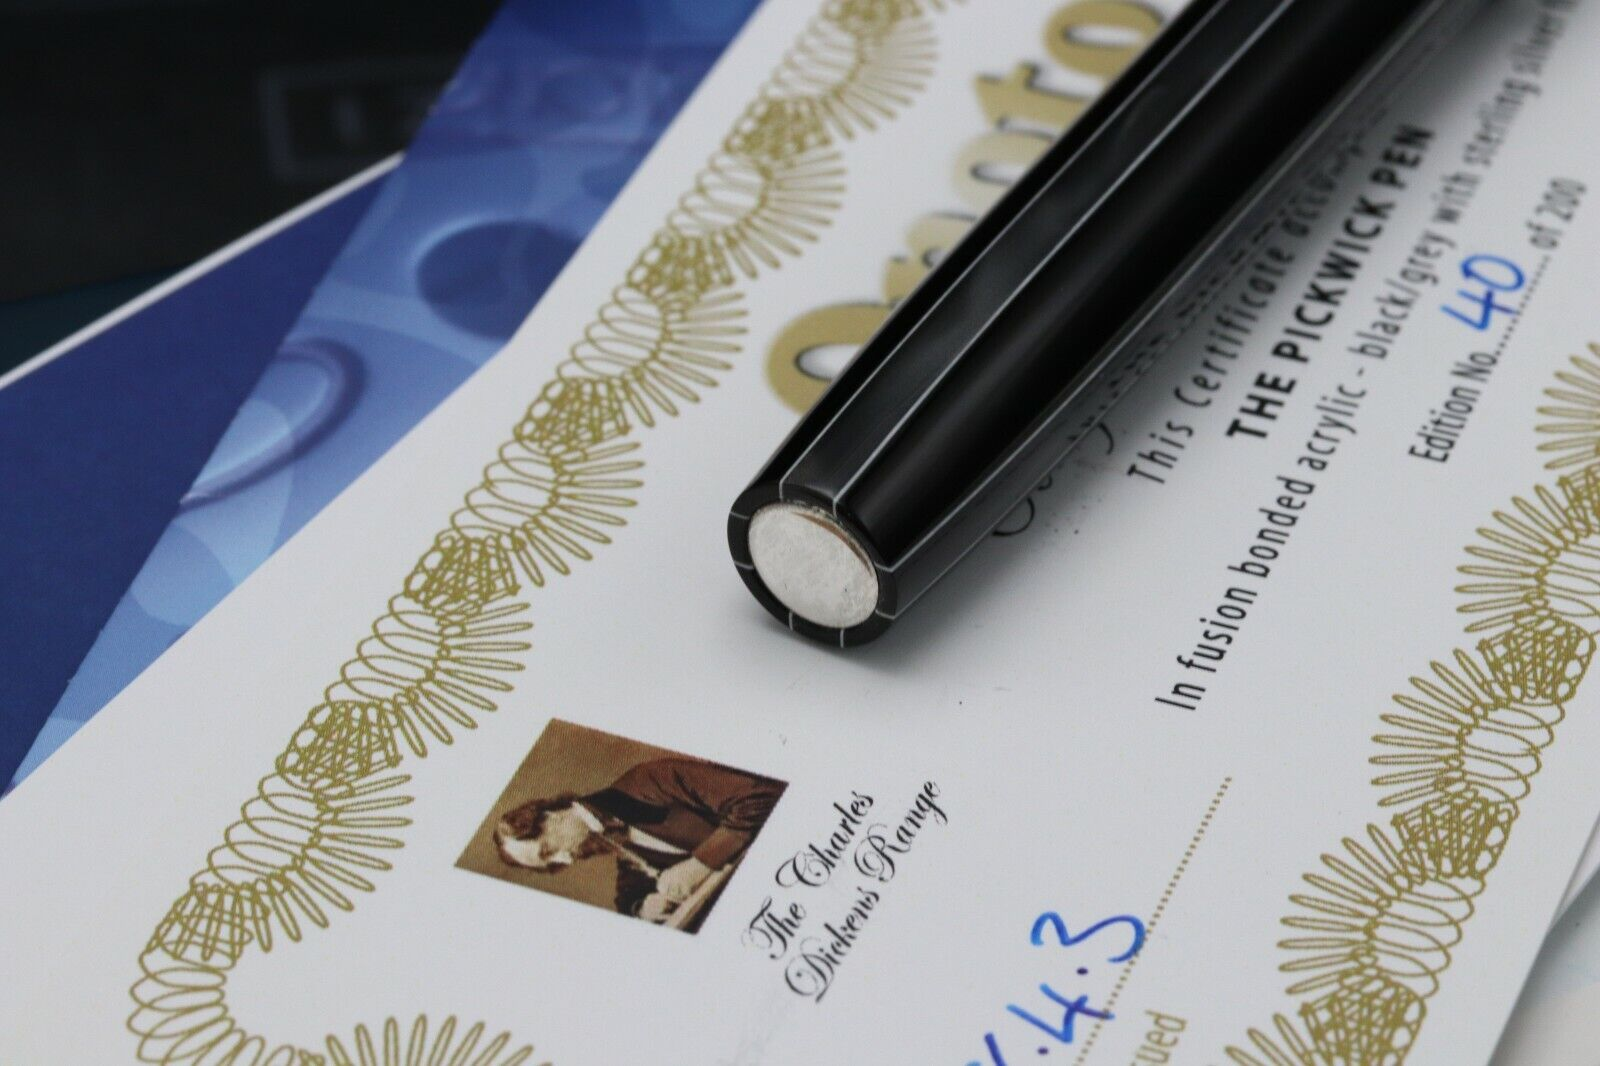 Onoto Magna Charles Dickens Pickwick Limited Edition Fountain Pen - UNUSED 6